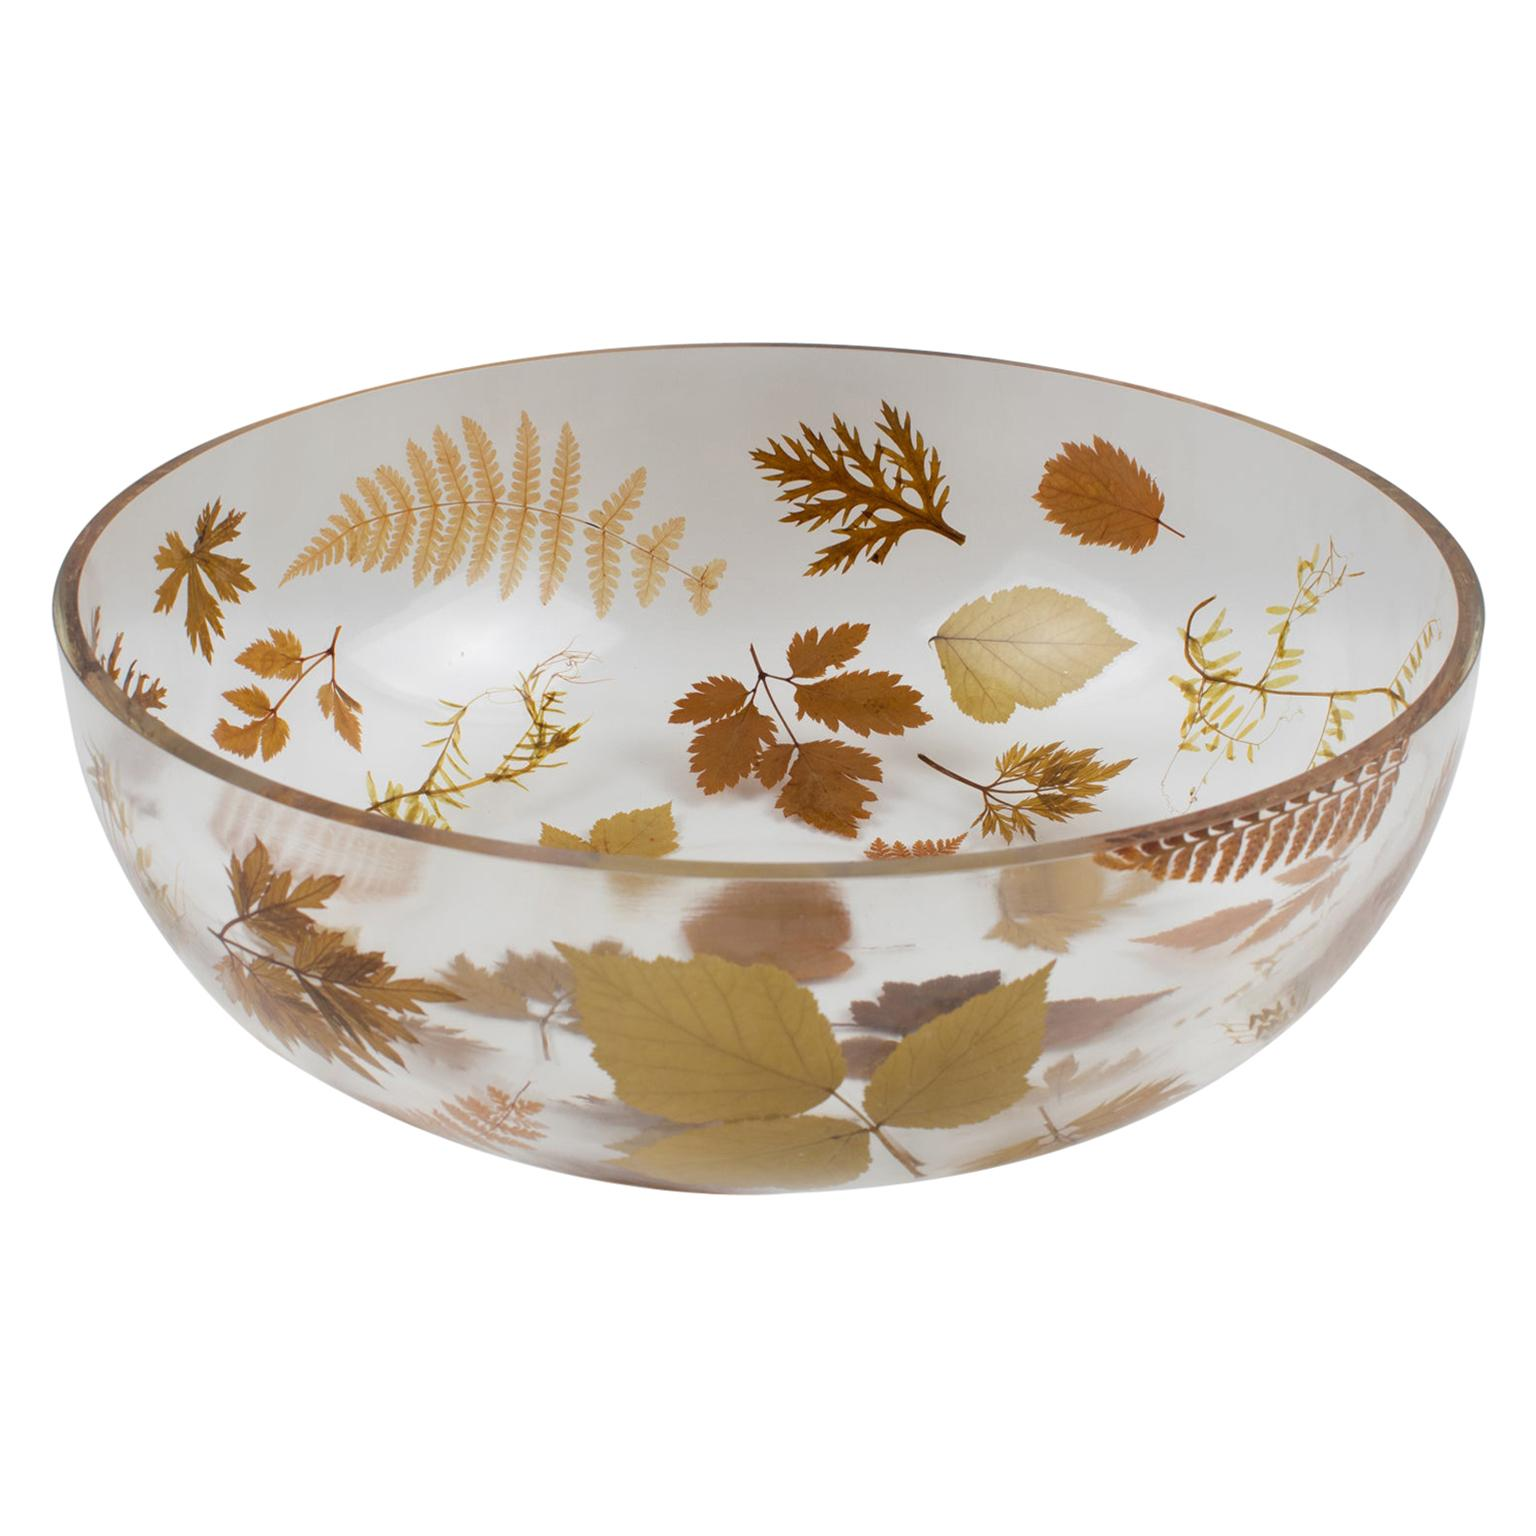 1970s Italian Resin Bowl Centerpiece with Leaves and Flowers Inclusions